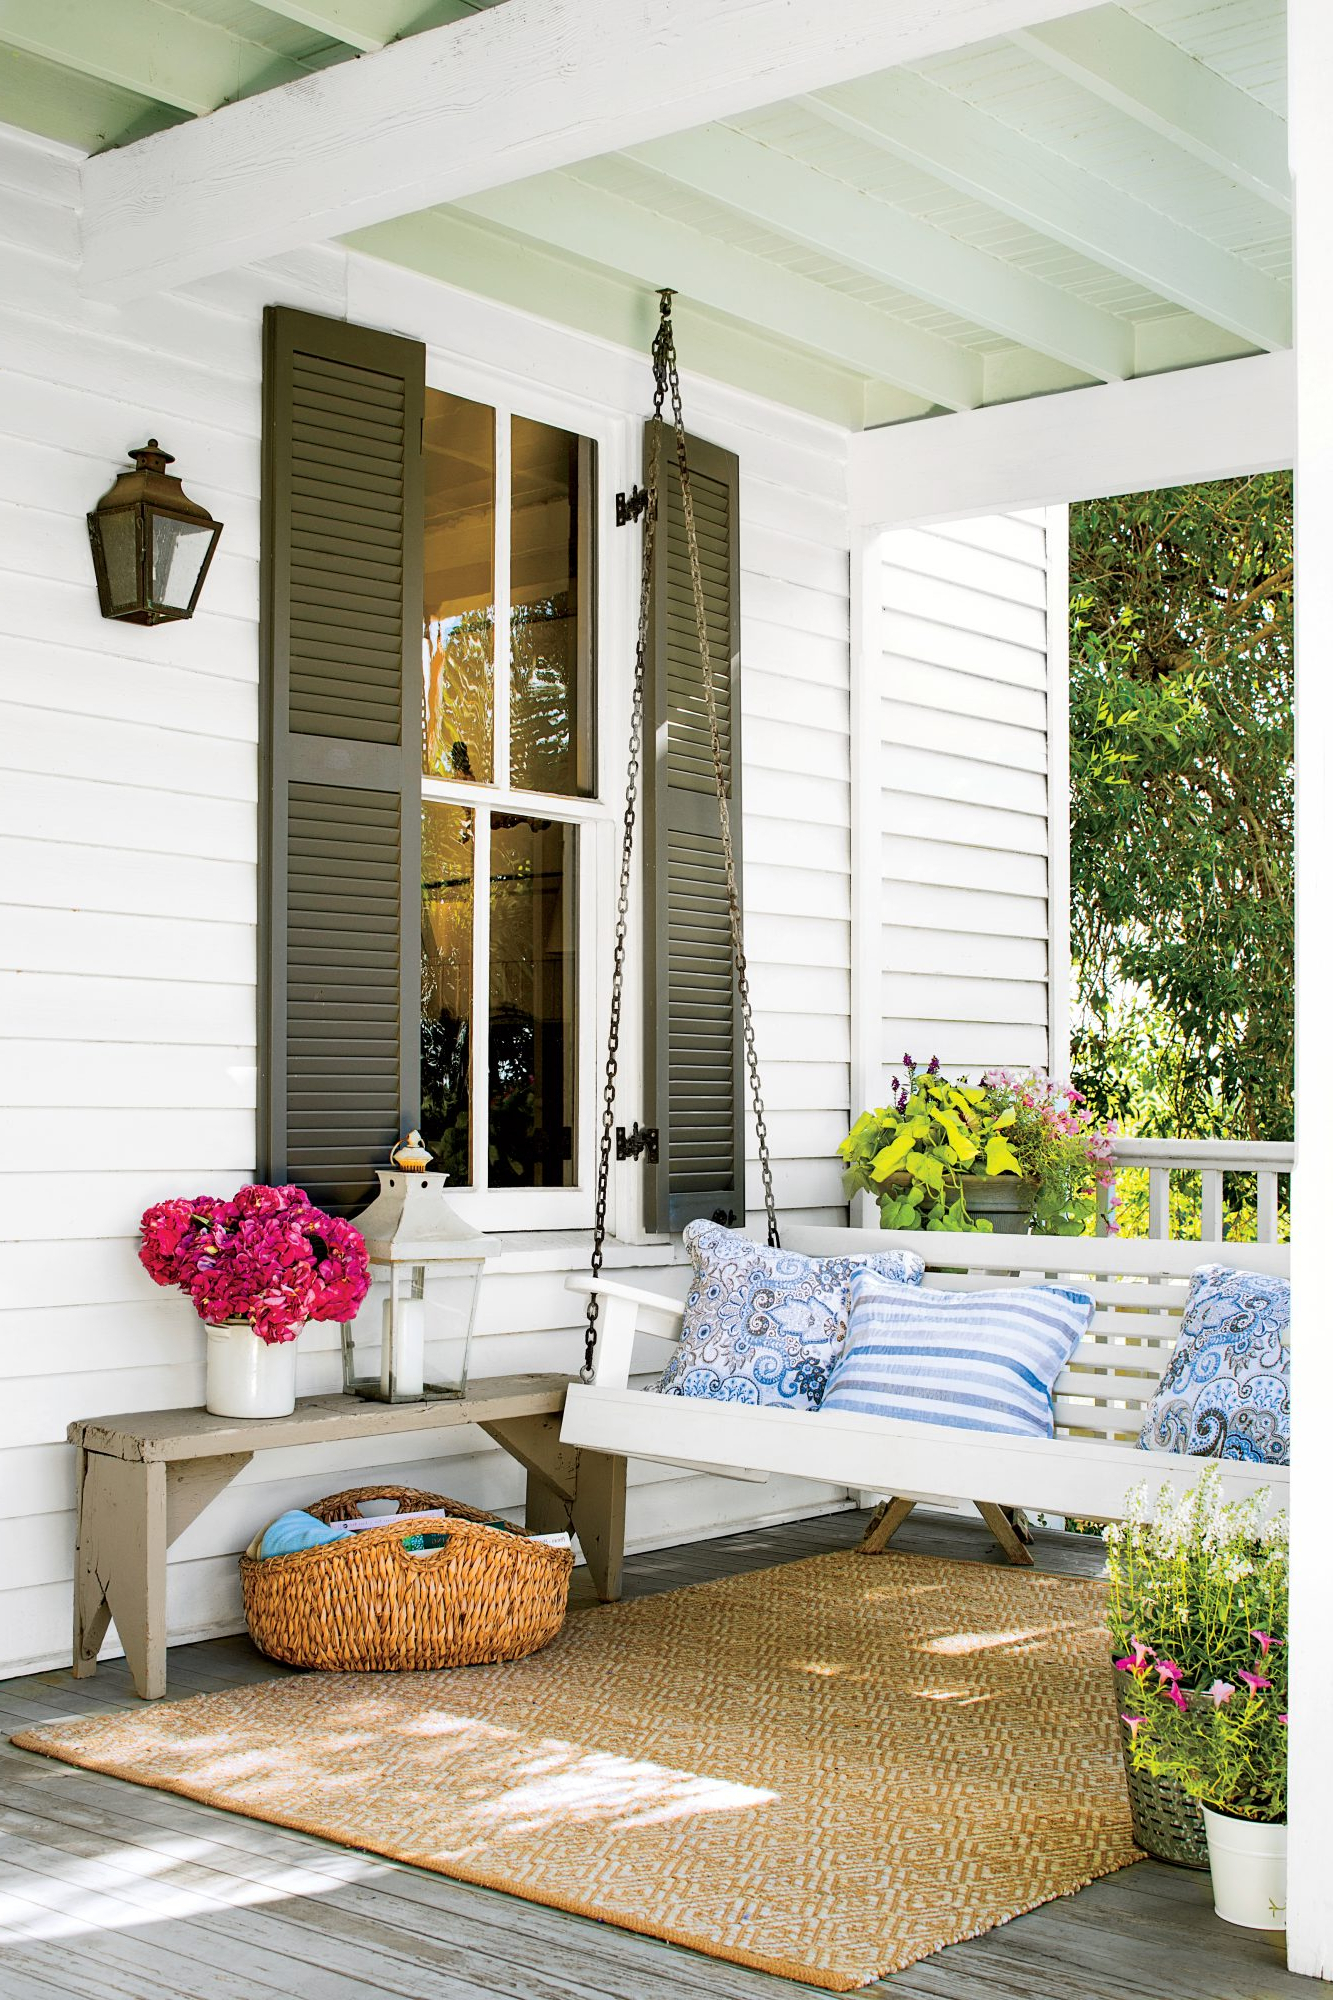 Preferred Sit A Spell! 10 Peaceful Porch Swings With Regard To Classic Porch Swings (View 25 of 30)